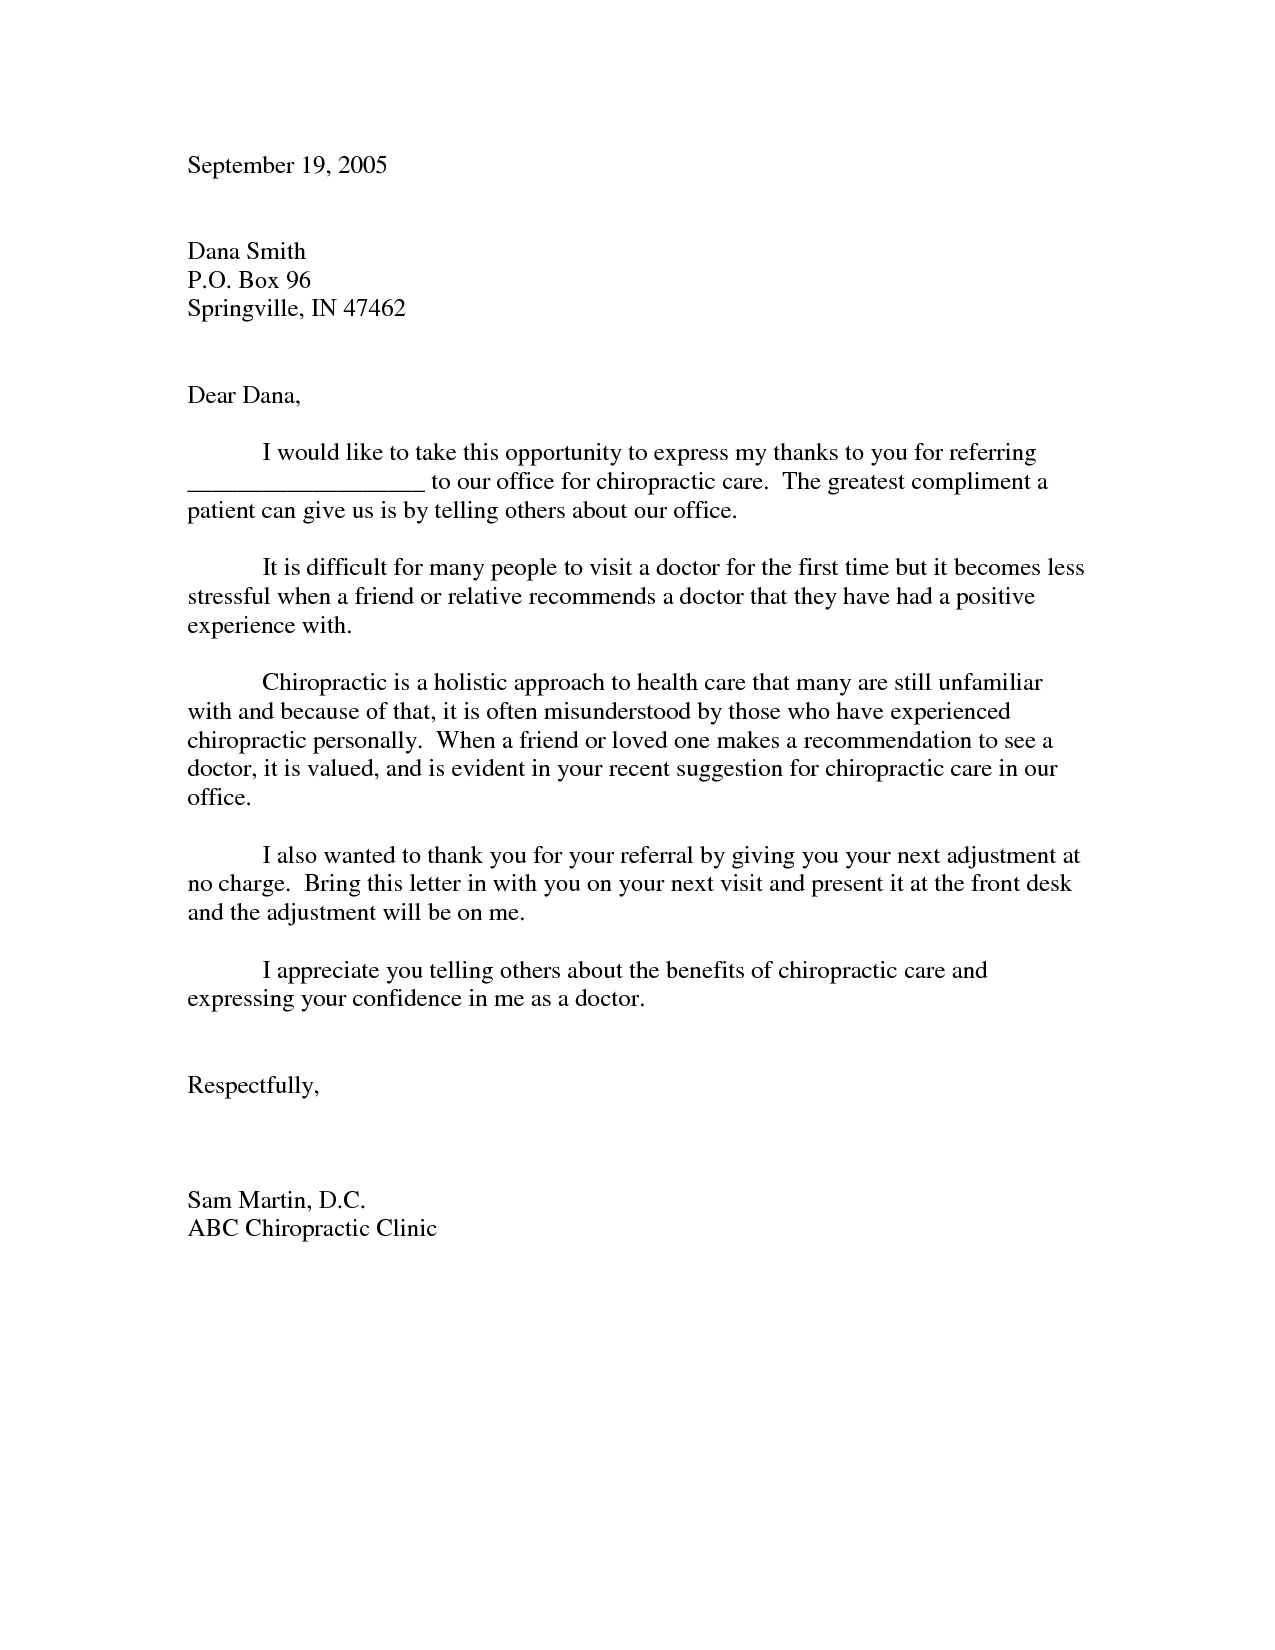 Awesome Collection Of Business Thank You Letter Sample that